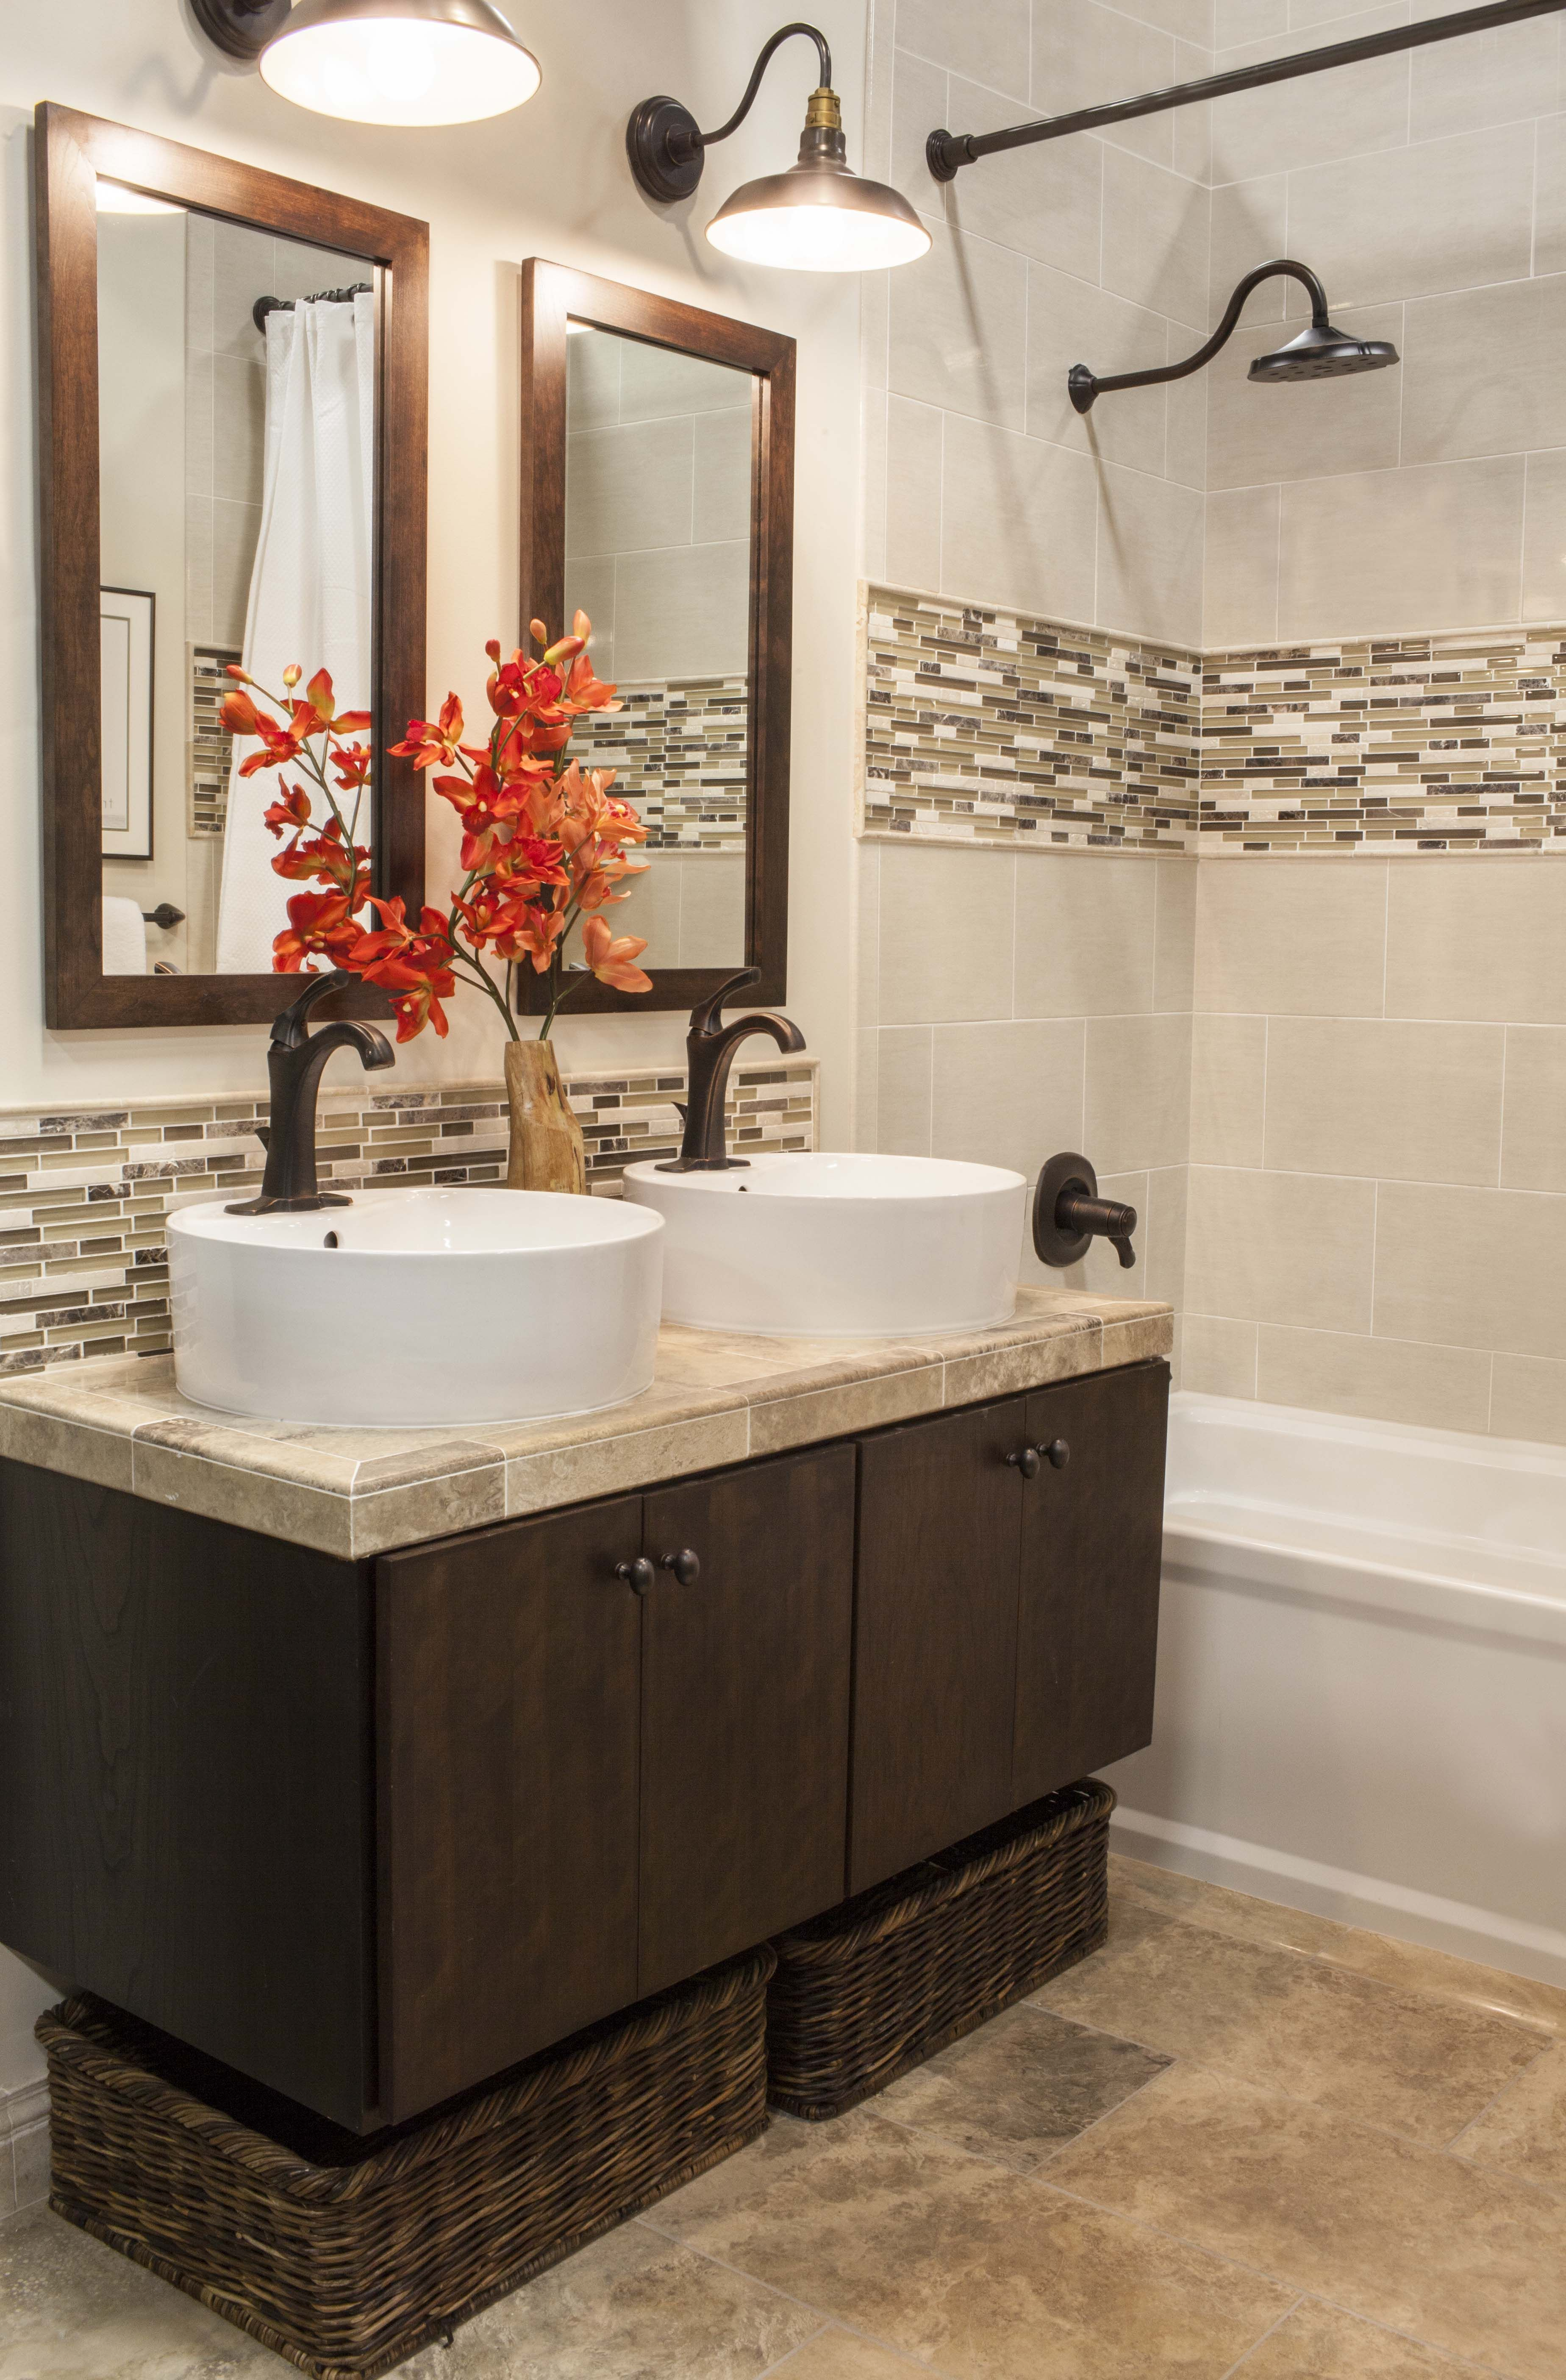 cheap bathroom tile ideas 7 top trends and cheap in bathroom tile ideas for 2018 bathroom tile ideas floor shower small 1117